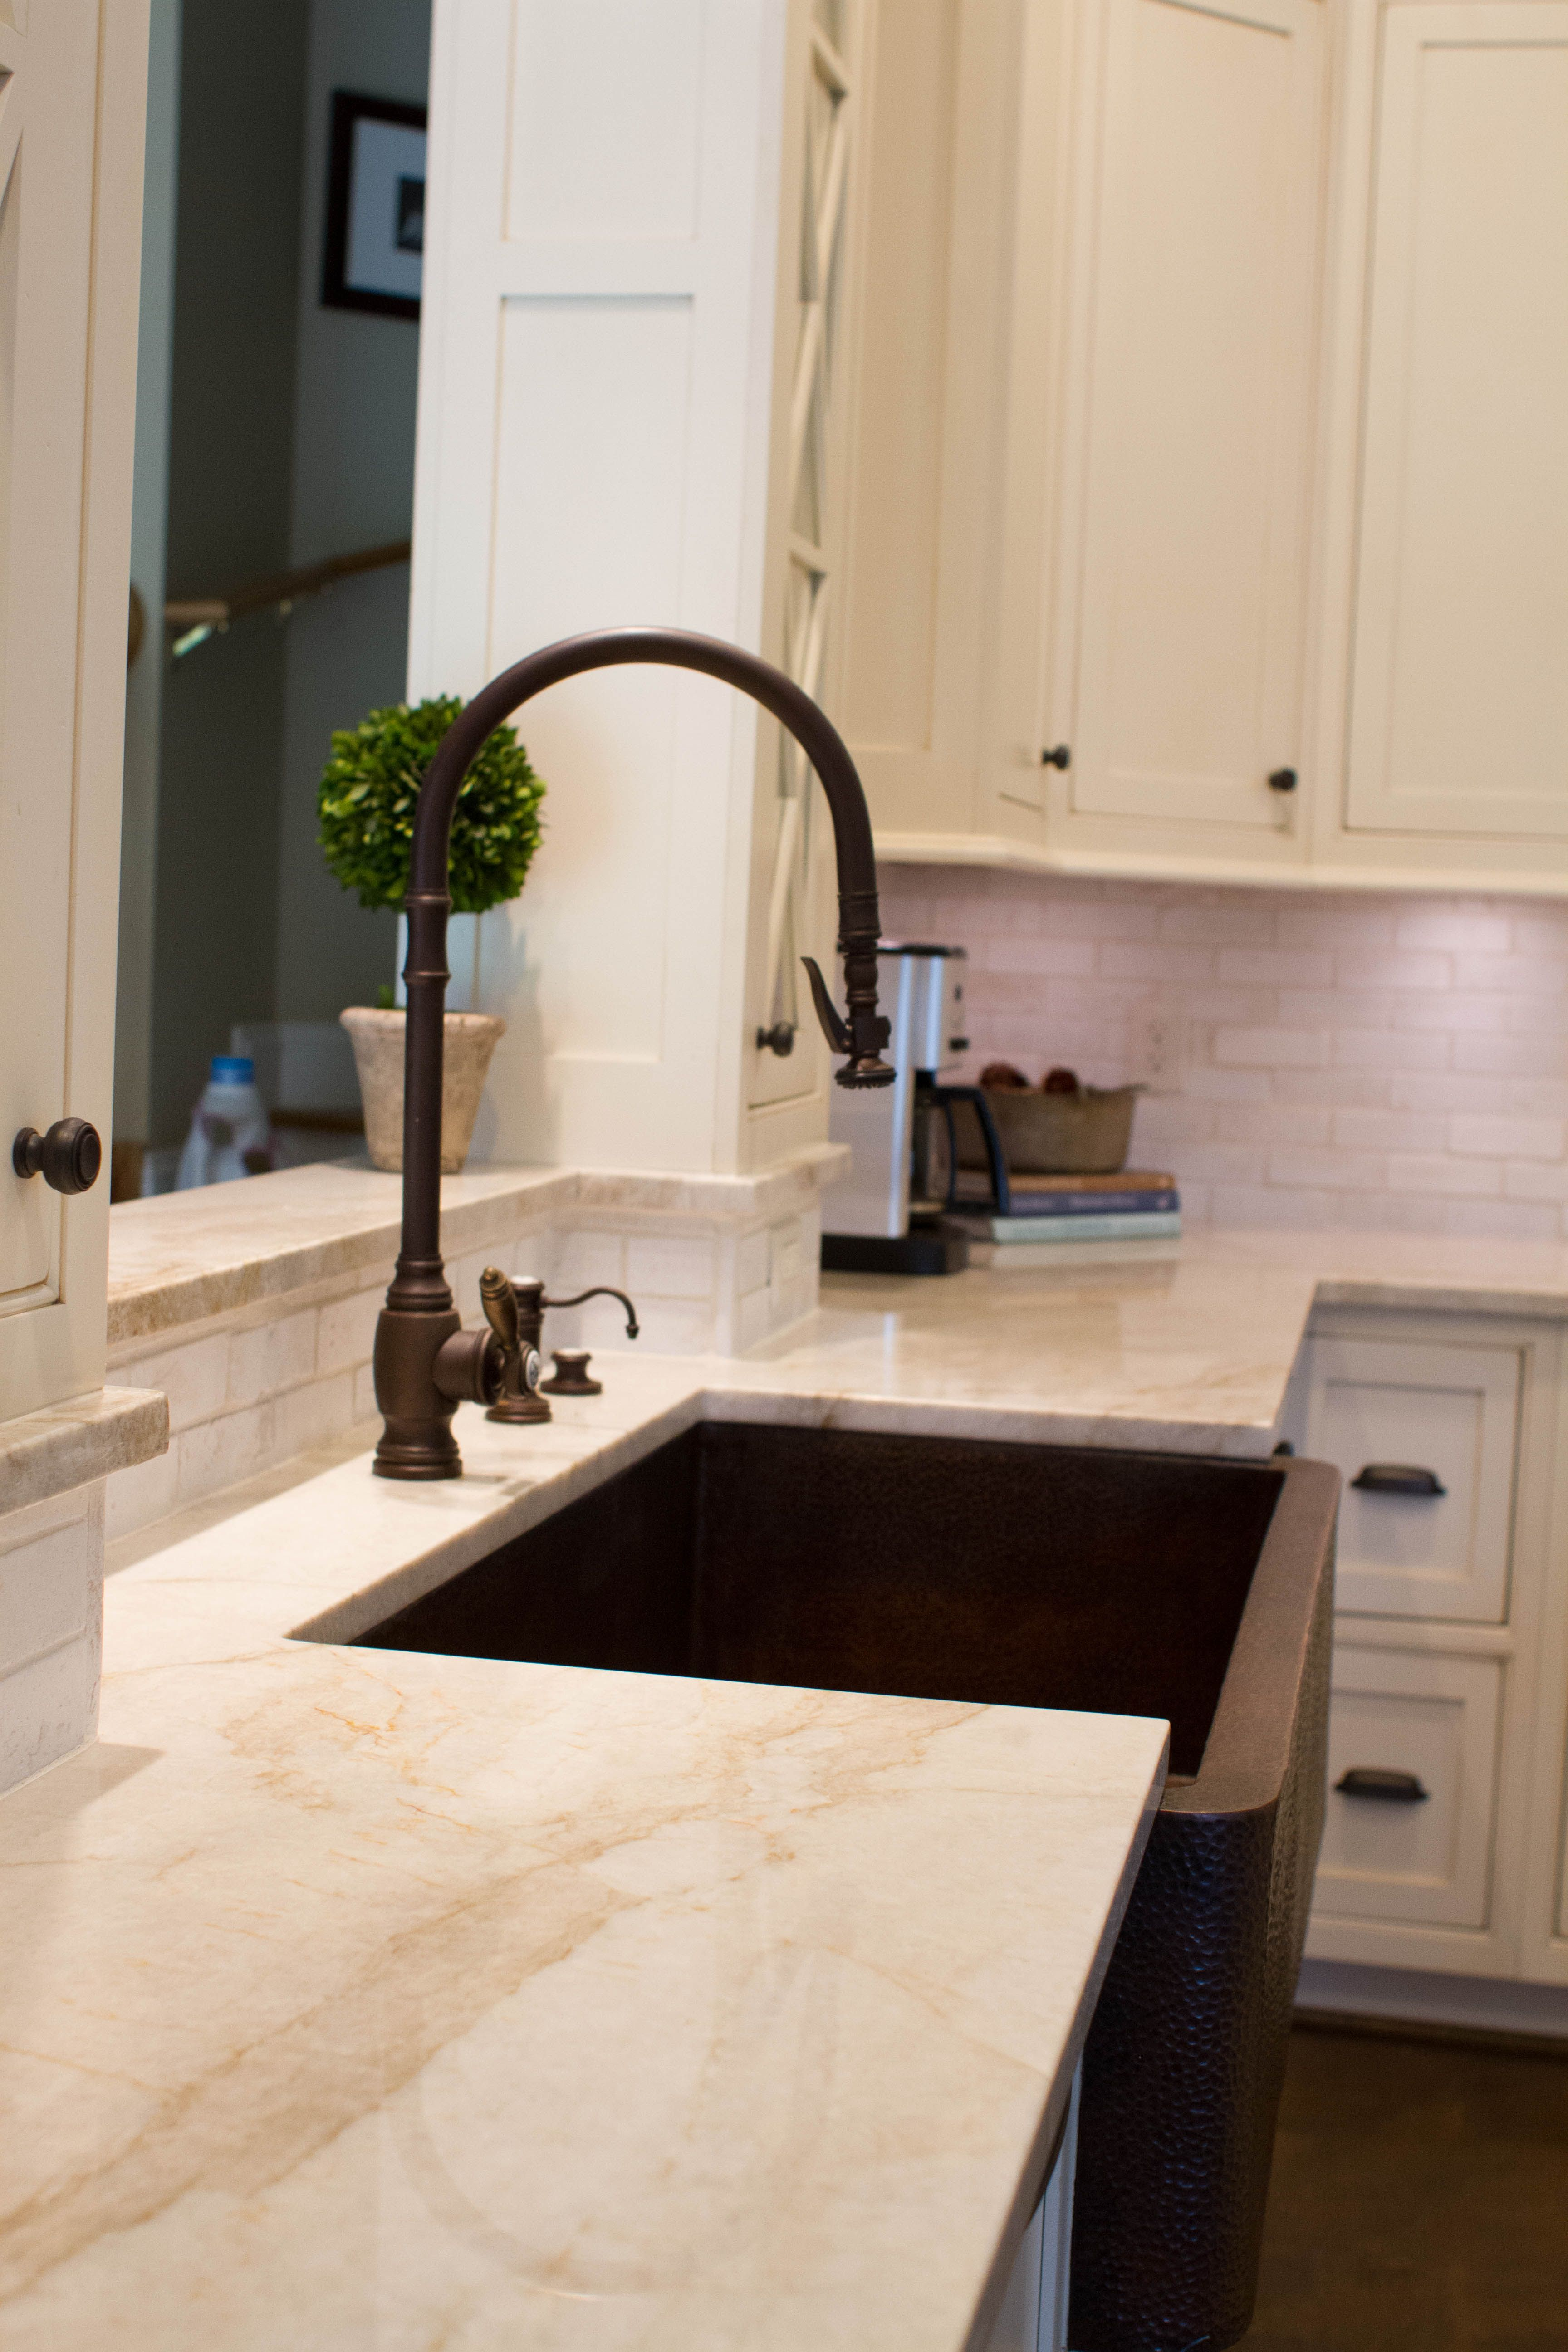 traditional plp extended reach pulldown kitchen faucet with soap dispenser and air switch kitchen faucet farmhouse sink kitchen kitchen remodel